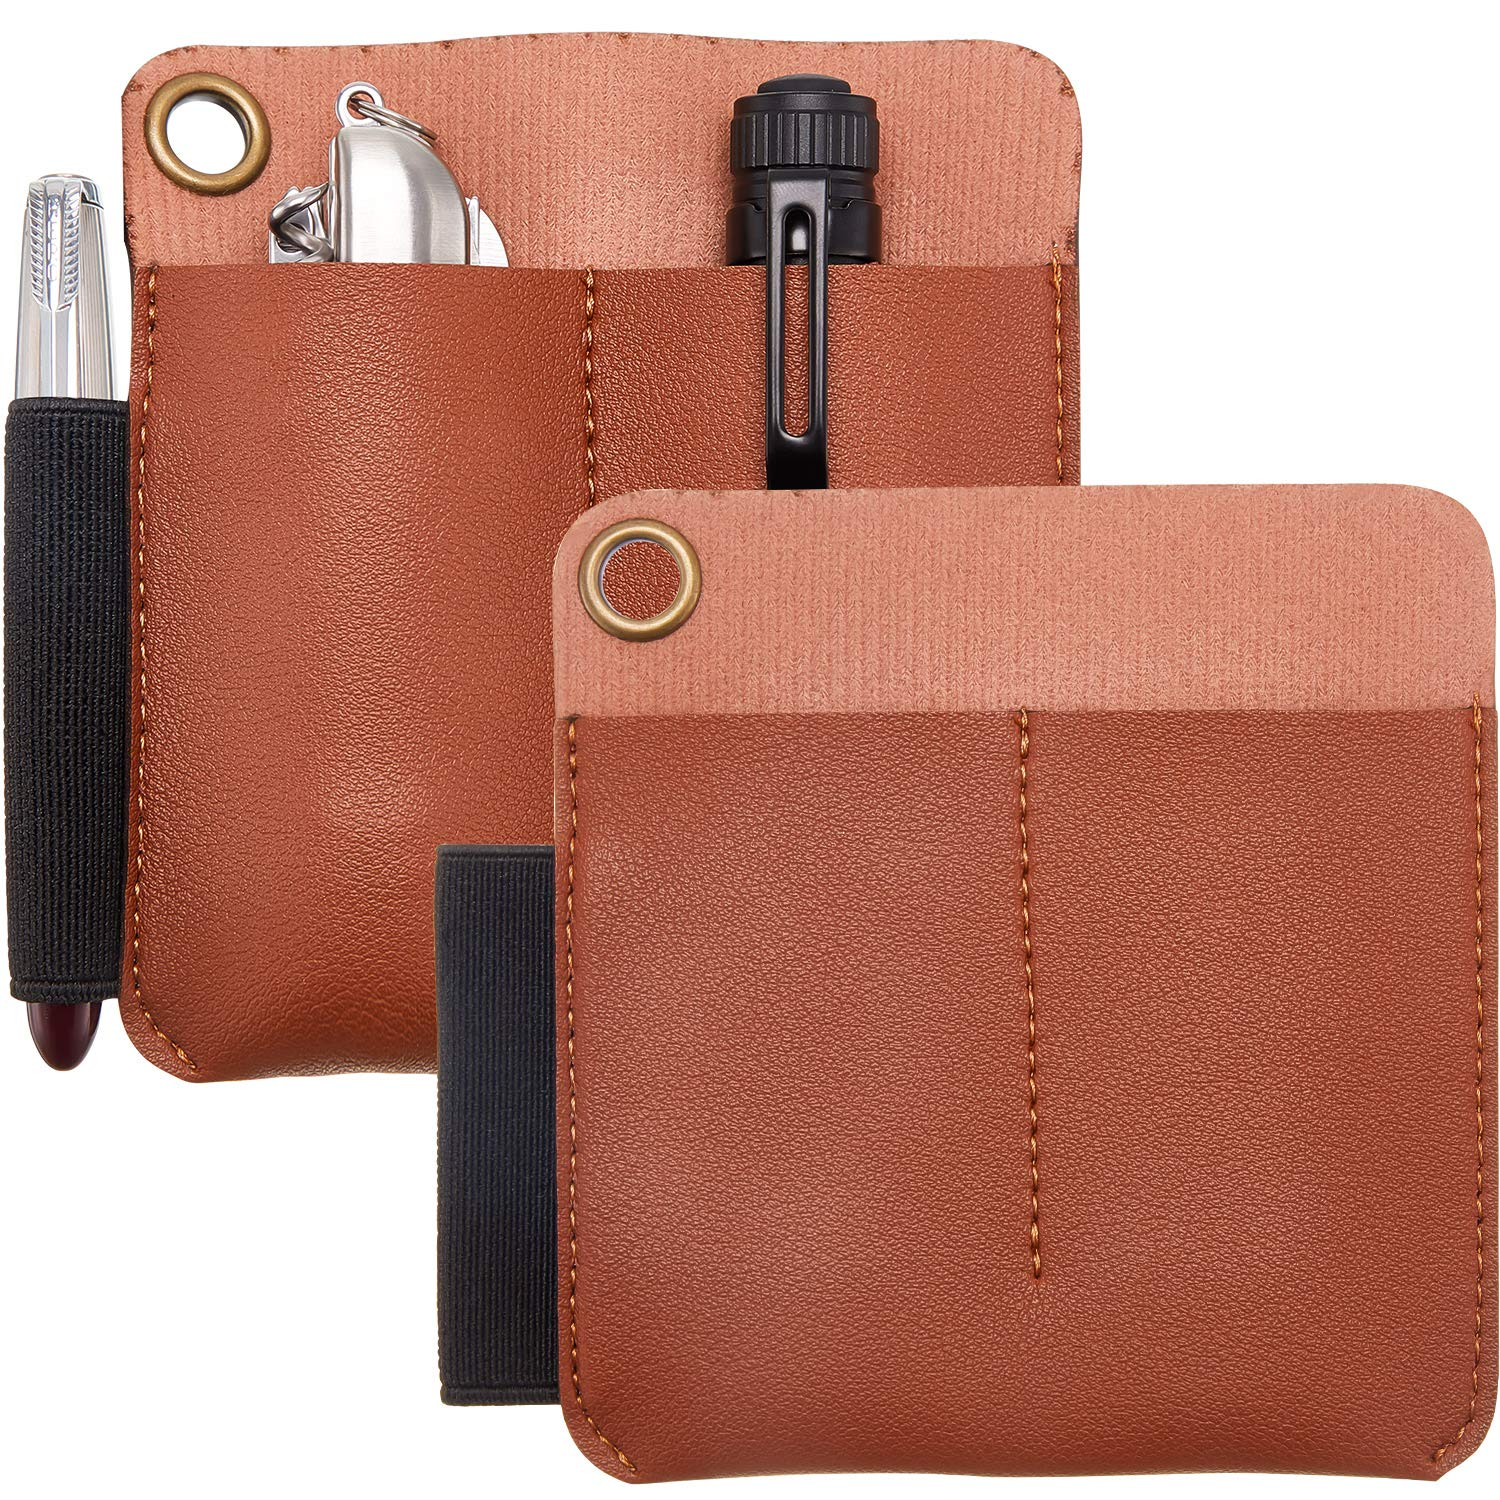 Mudder 2 Pieces Leather Pocket Pouch Leather Pocket Protector Organizer Leather Knife Sheaths Carrier with Pen Loop Pocket for Knife Pen